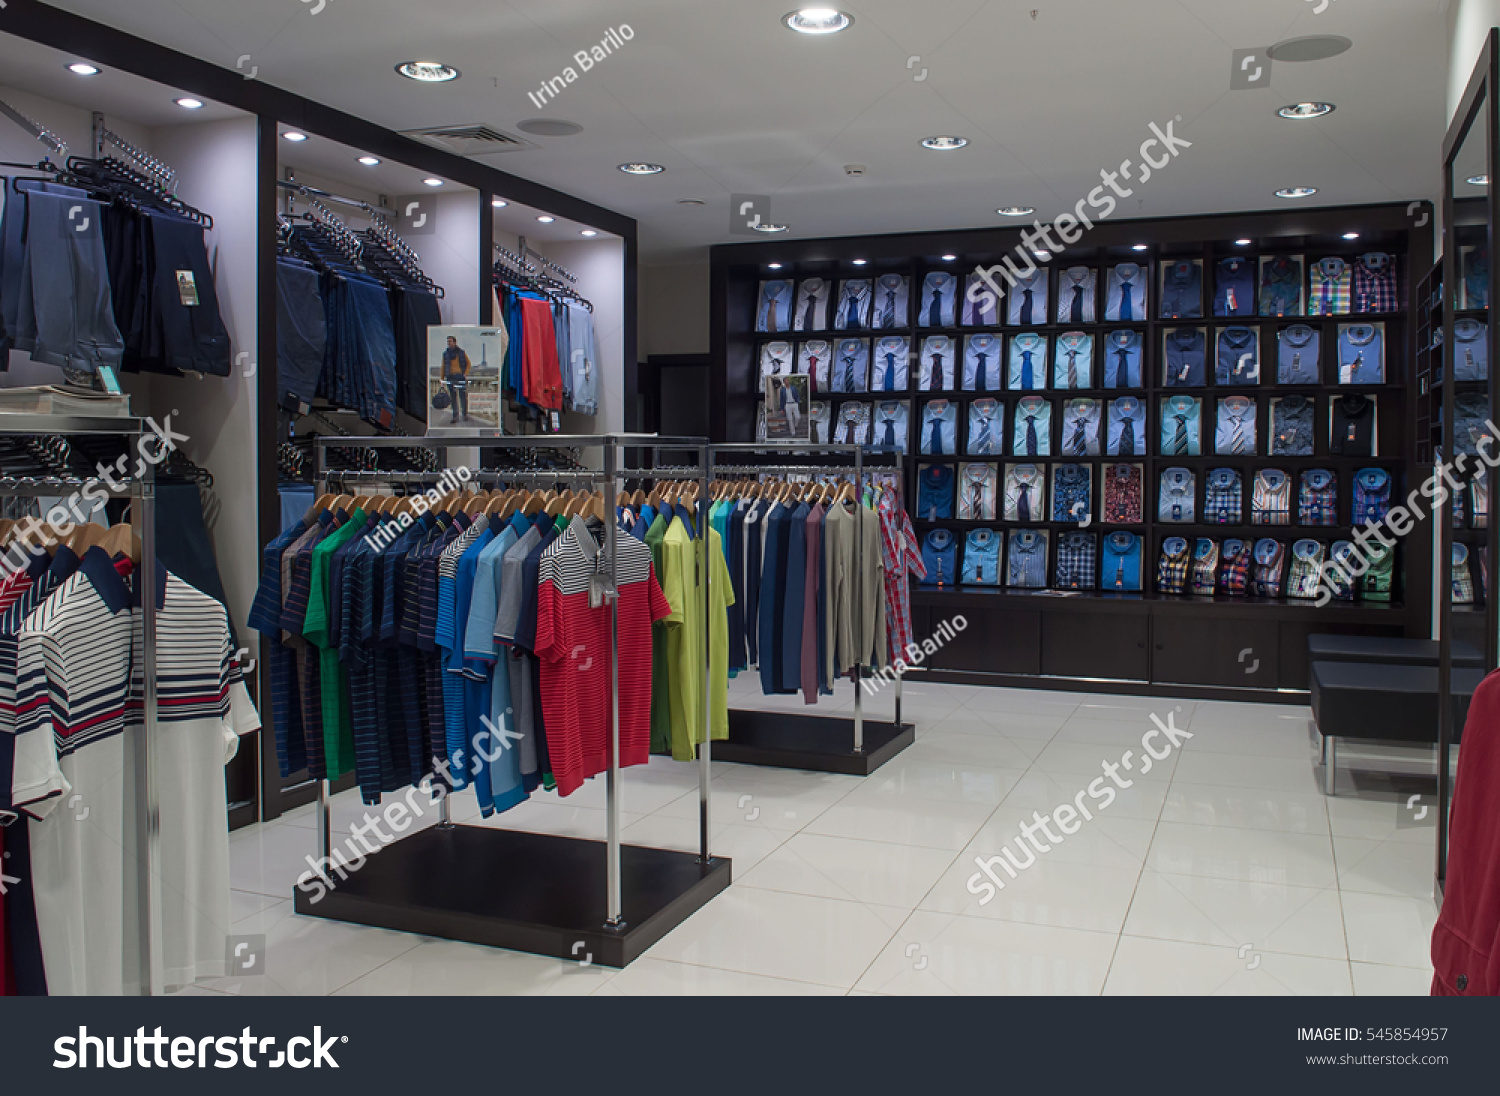 June clothing store